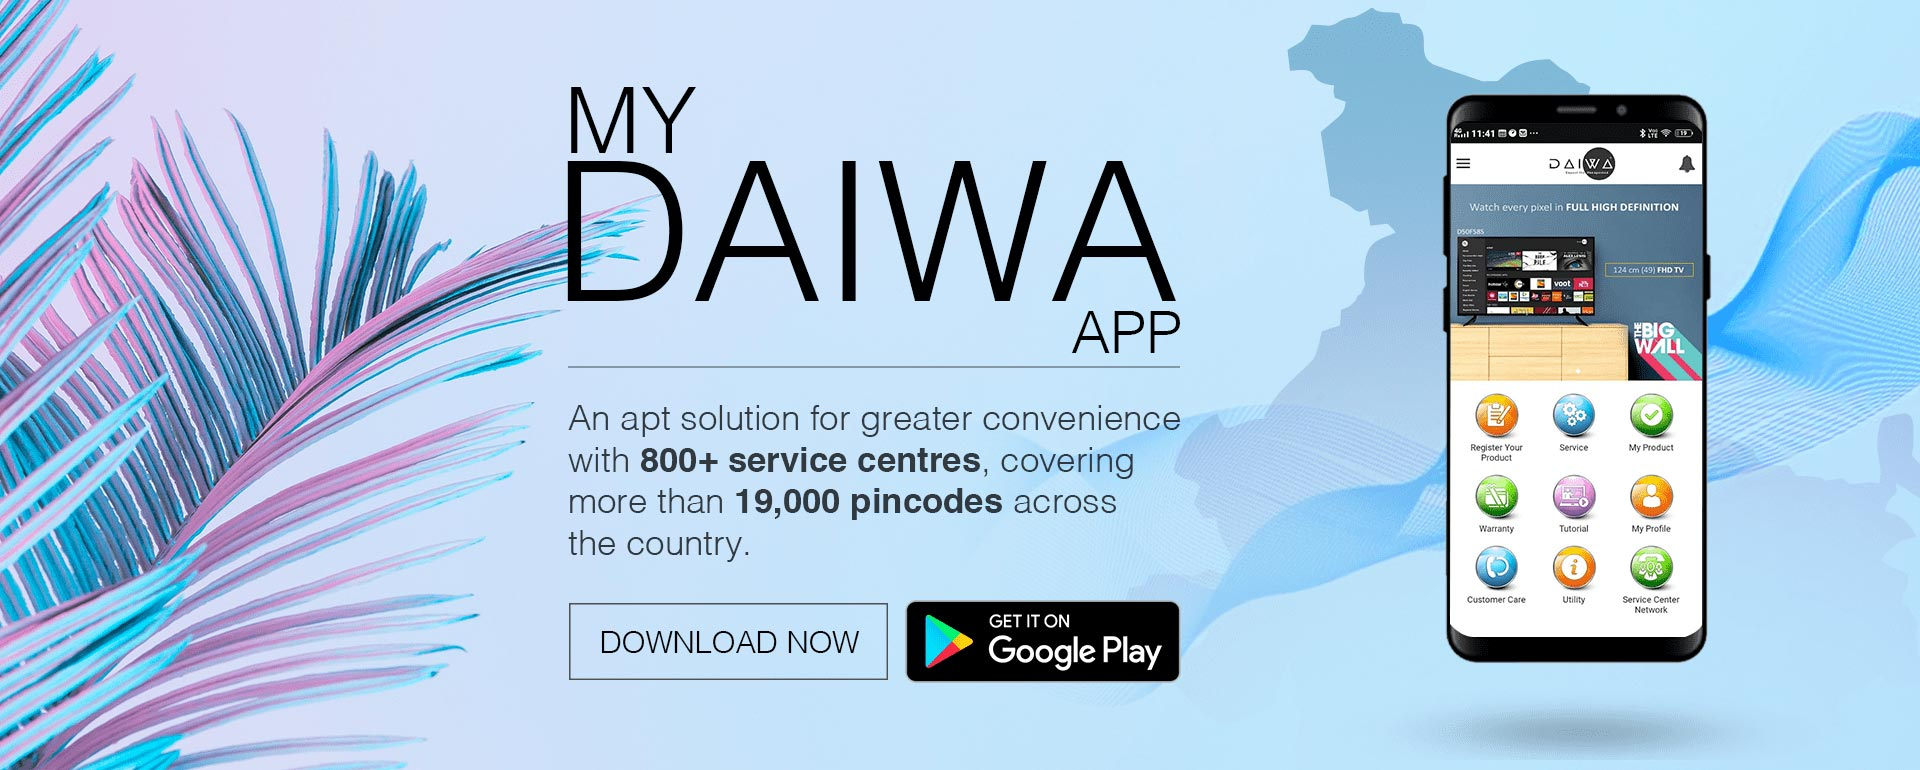 My Daiwa App on Google Play Store